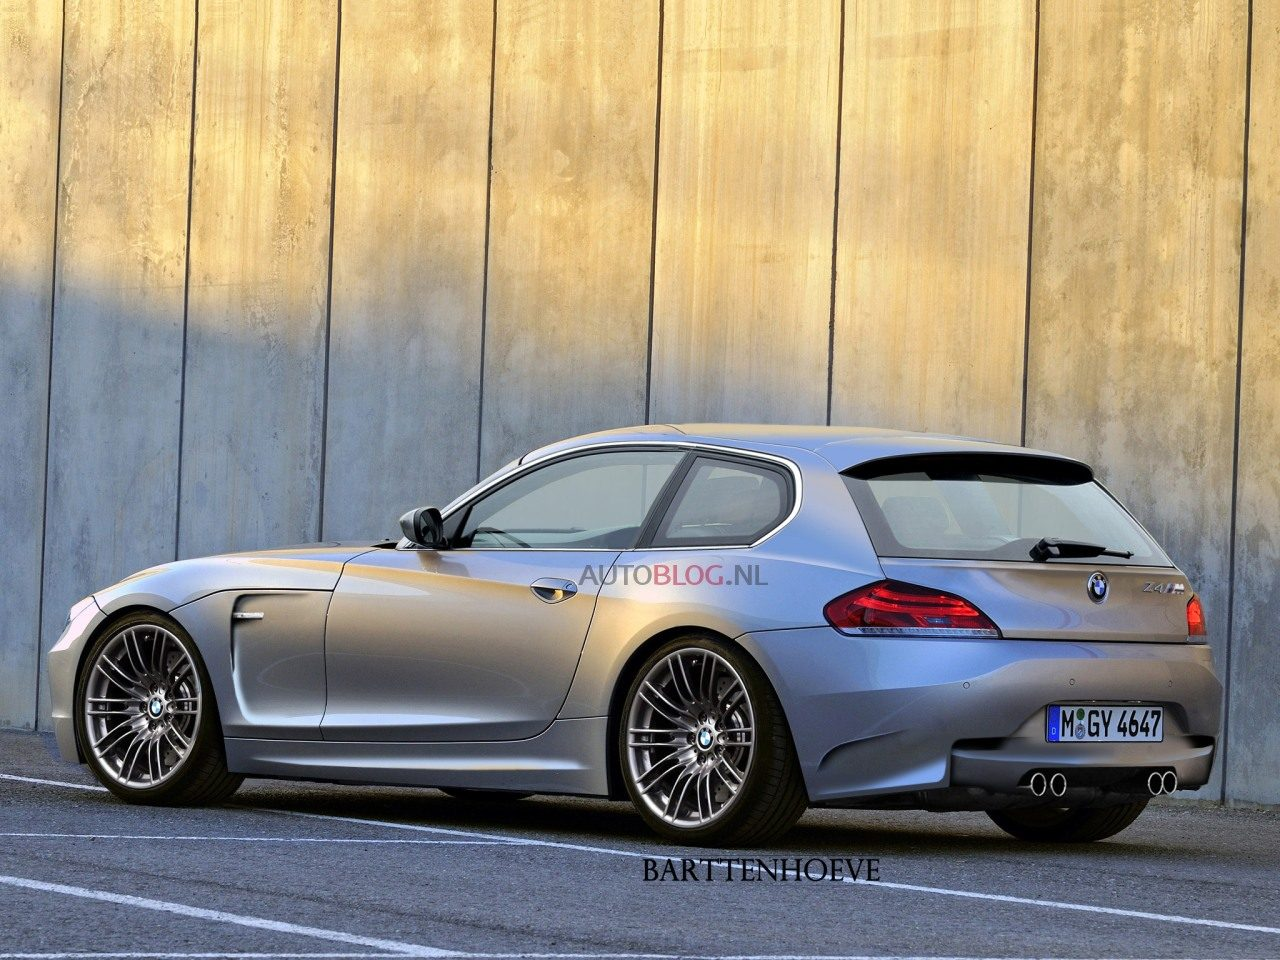 Dagdromen Over Een Bmw Z4m Shooting Brake Autoblog Nl